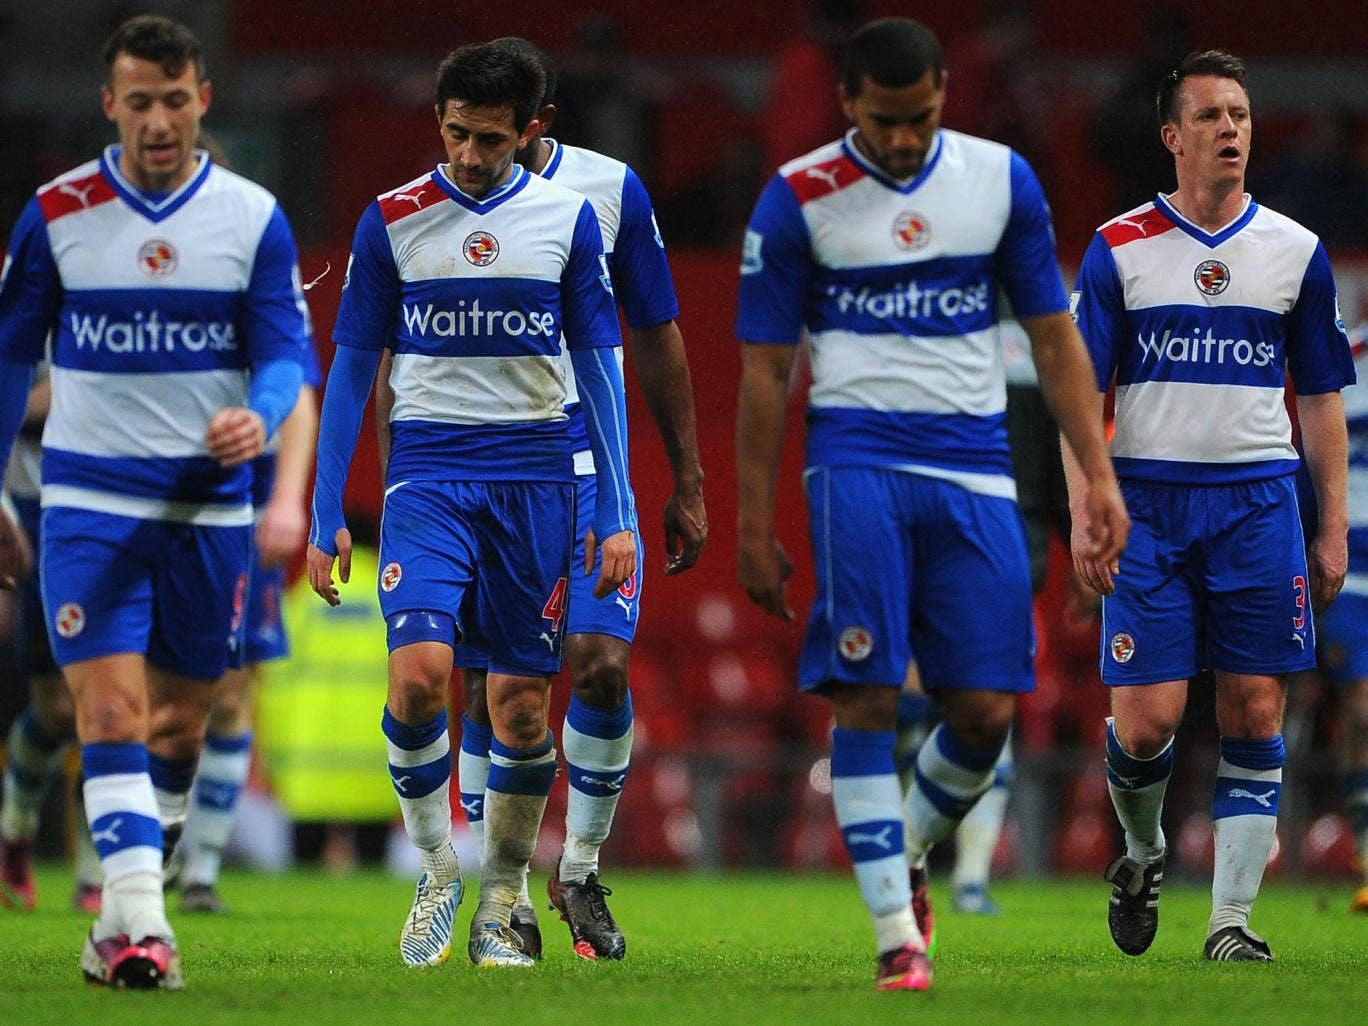 Reading players look dejected after their recent defeat against Manchester United at Old Trafford in the Premier League